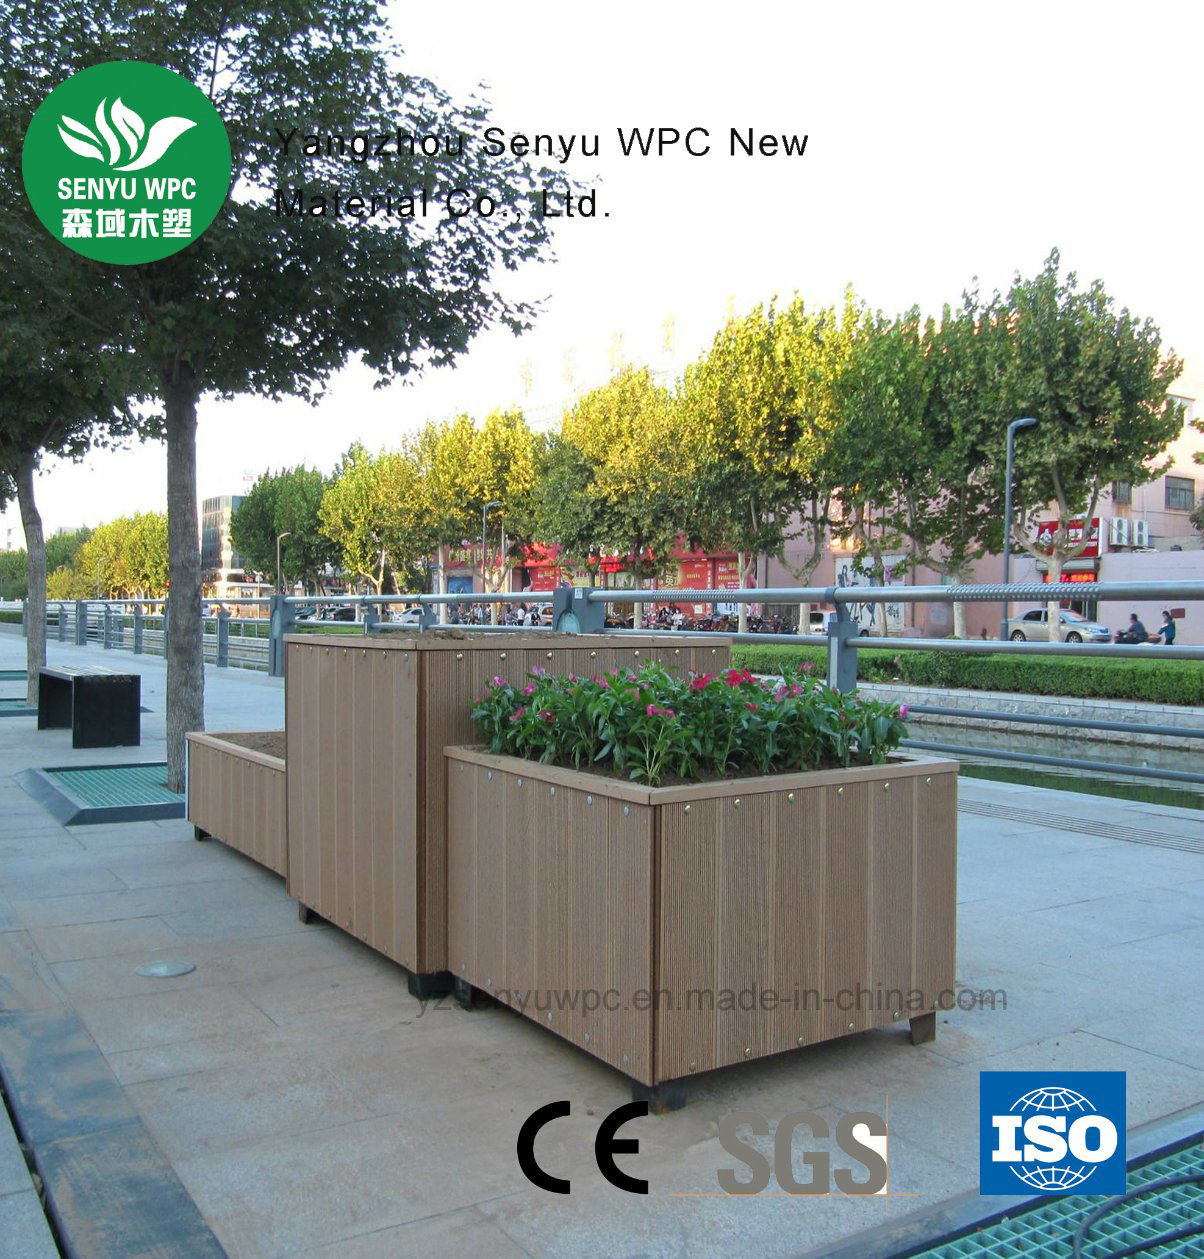 Recyclable Garden WPC Flower Box